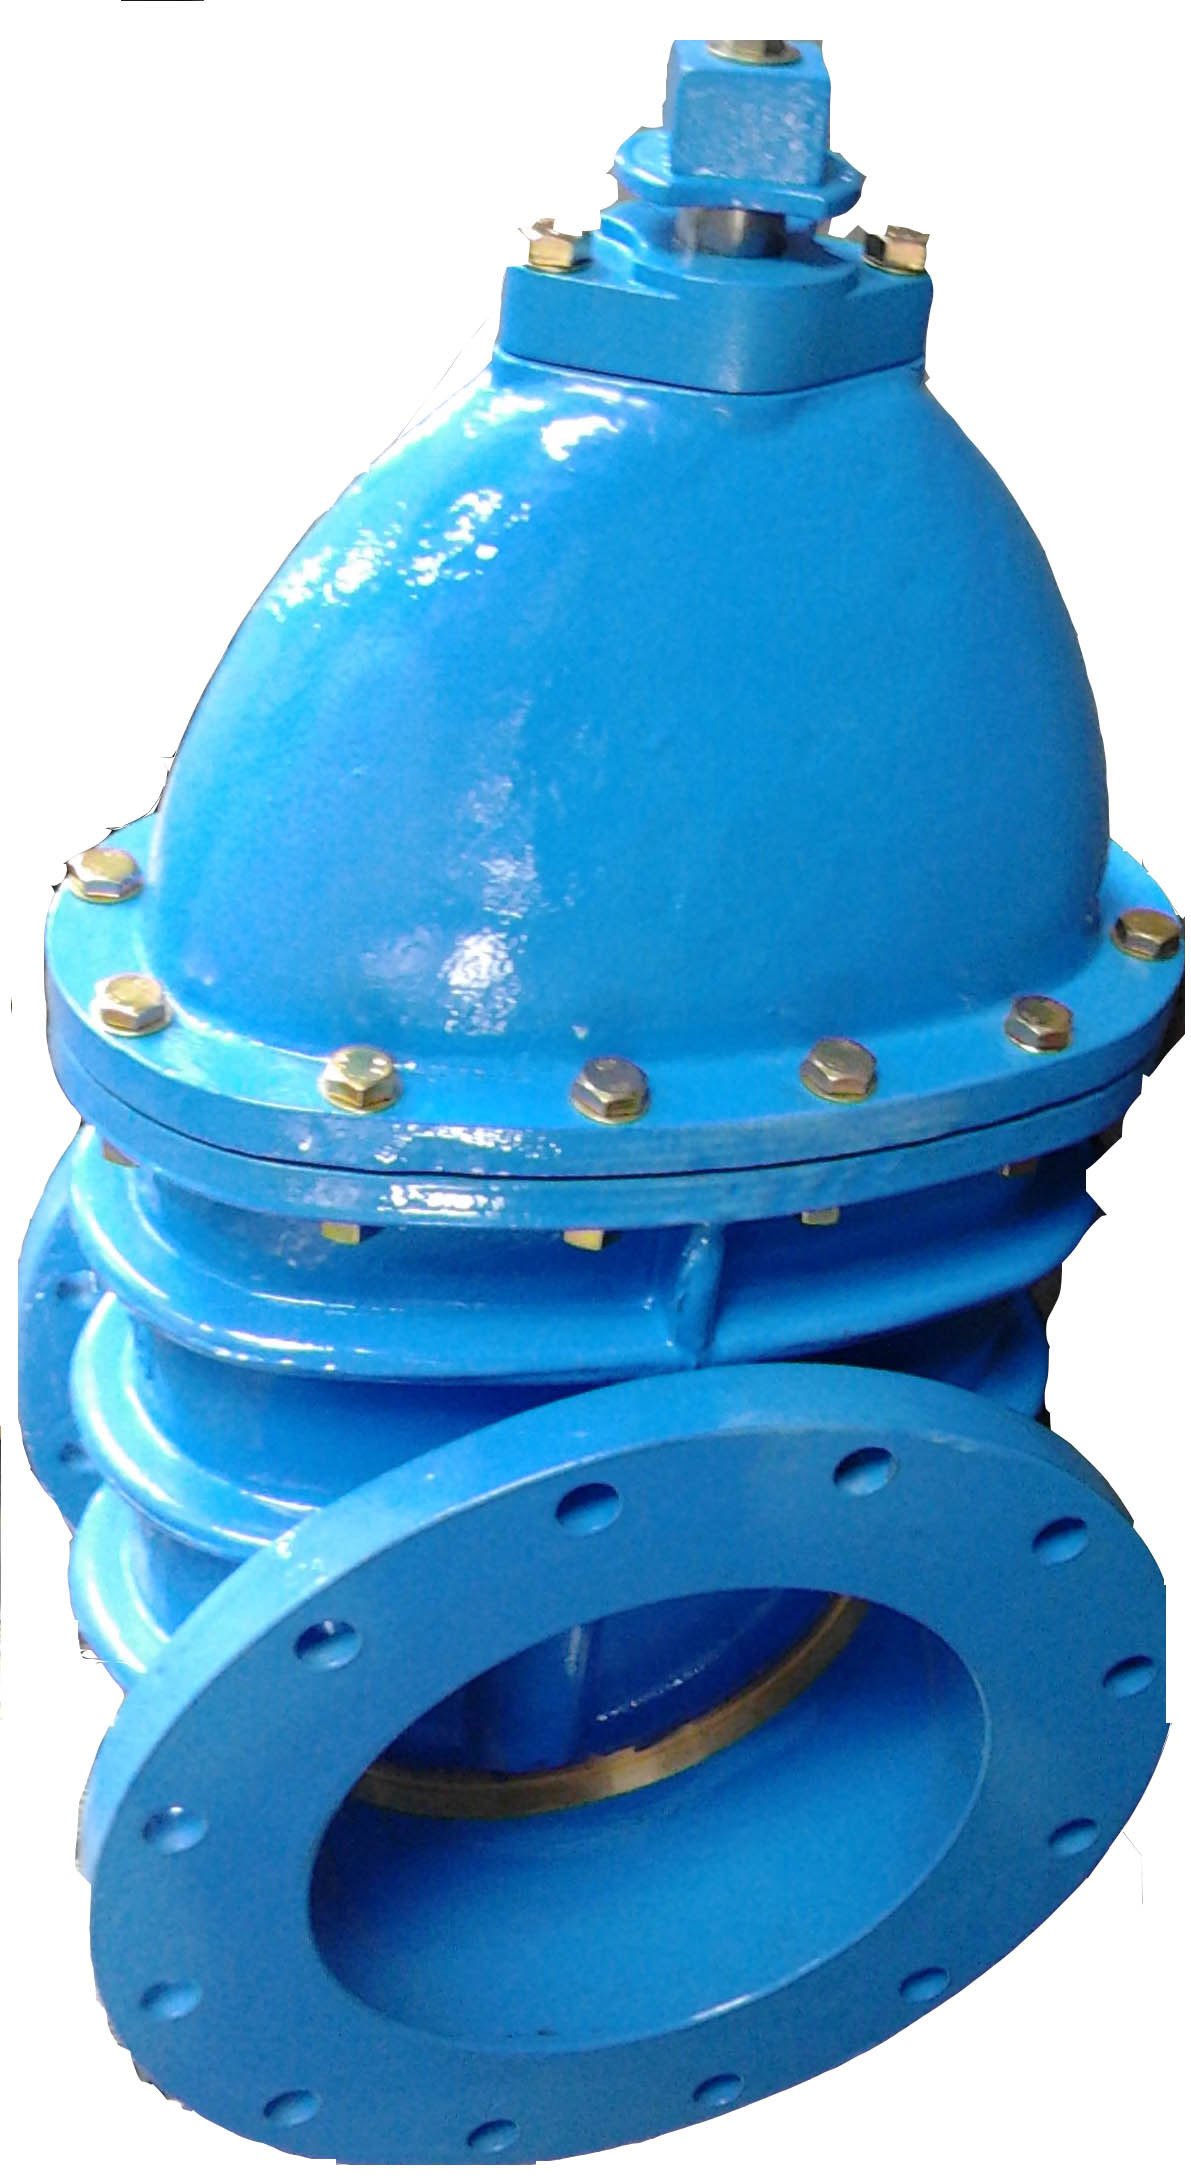 Ductile Iron Body and Metal Seat Gate Valve